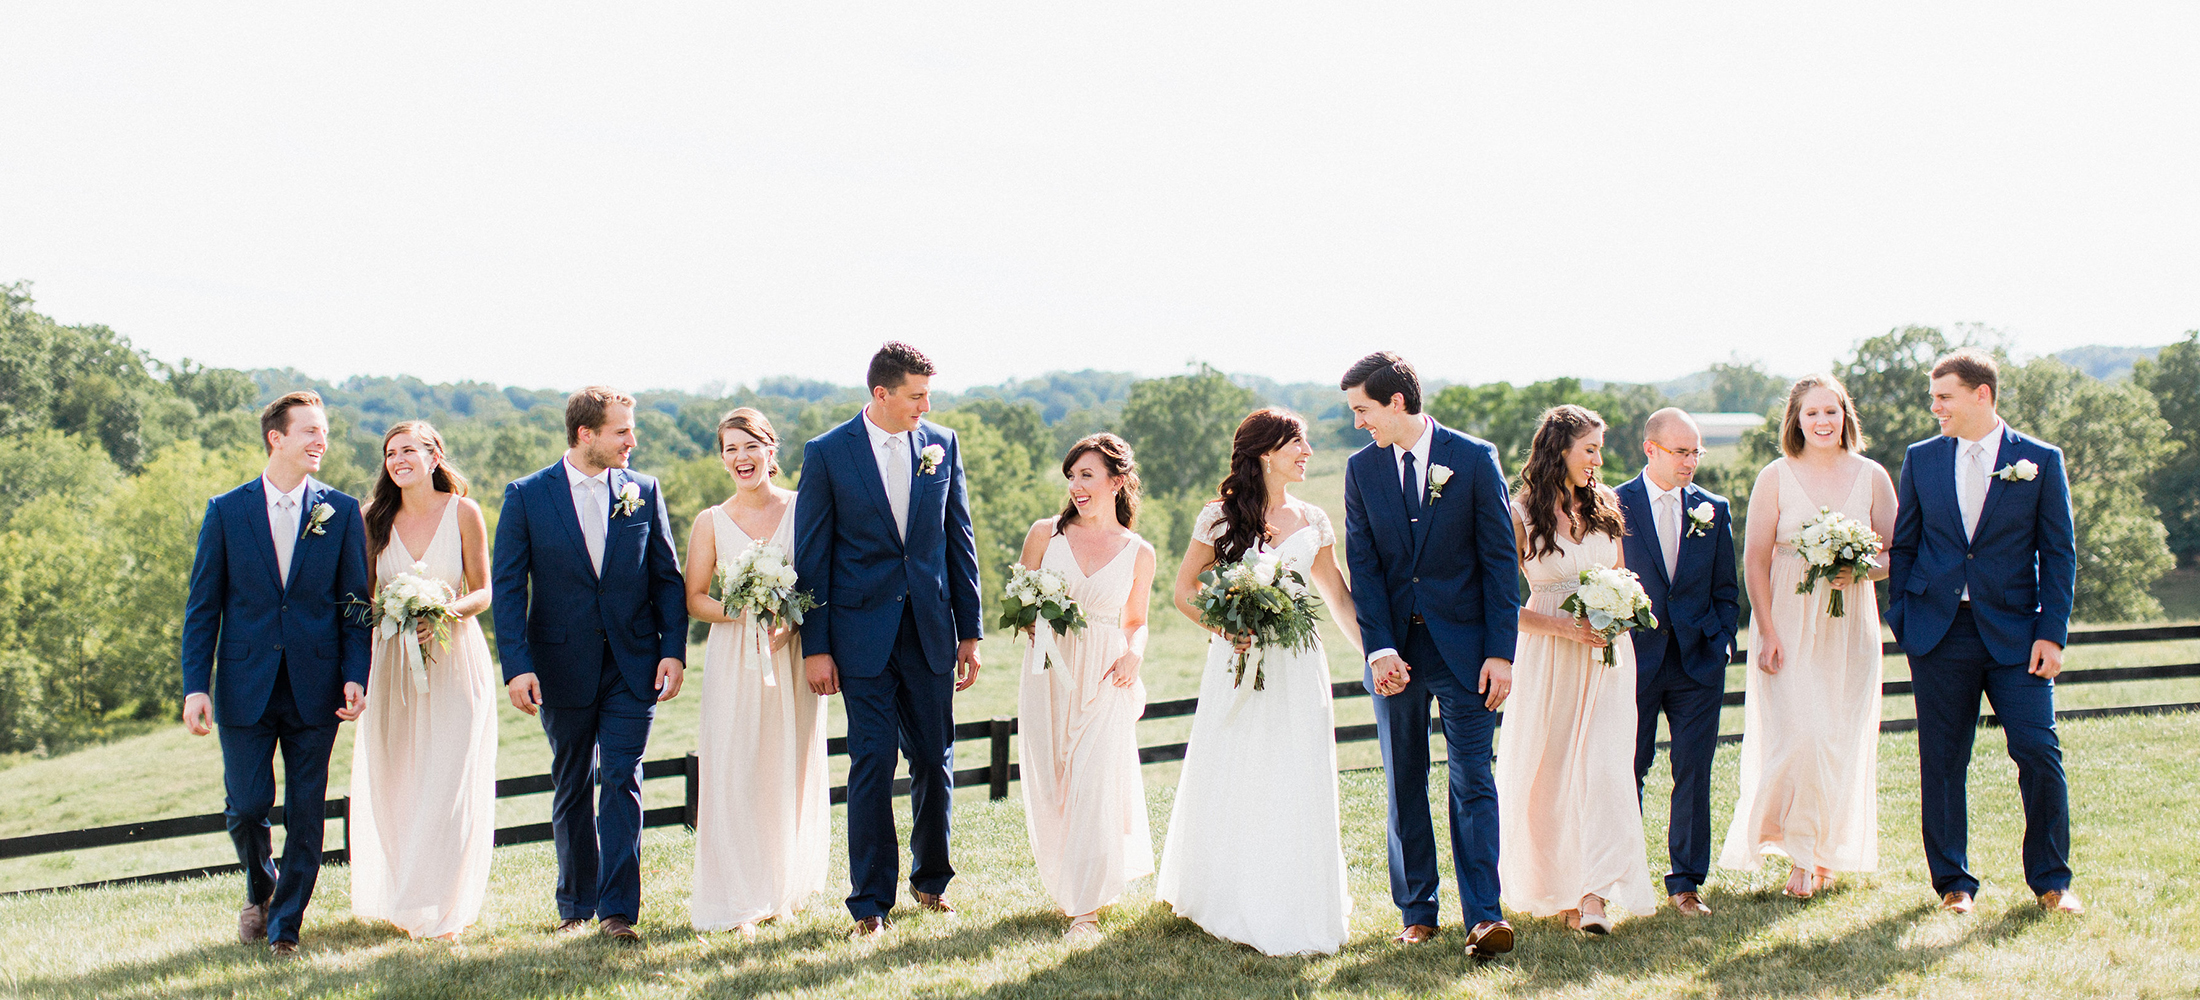 Bridal party walking the hills outside Shadow Creek Weddings wearing navy and blush